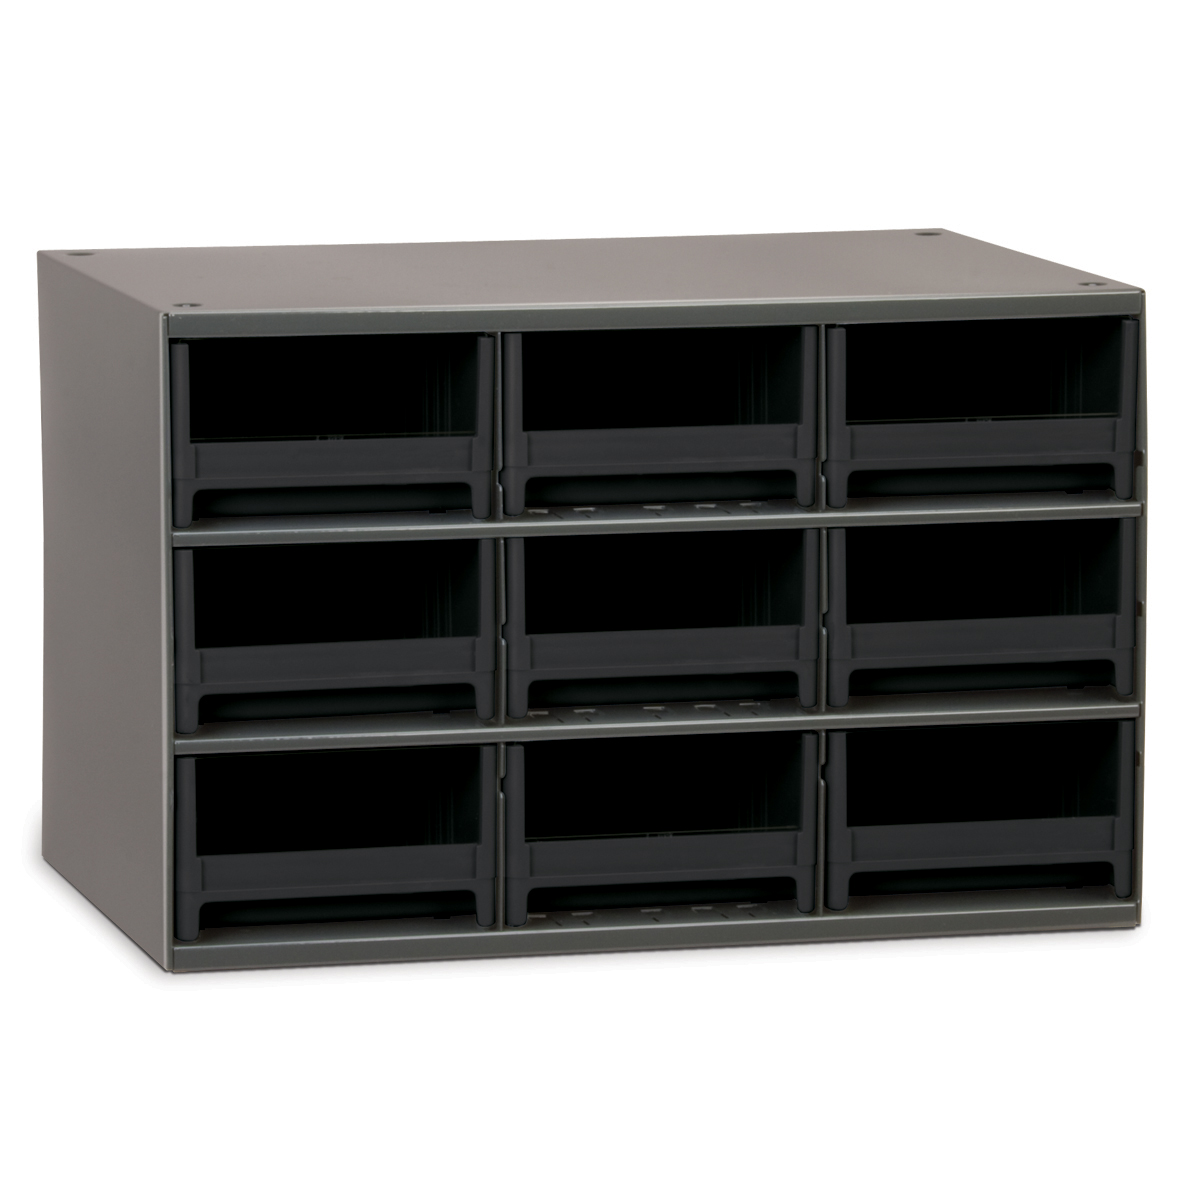 19-Series Steel Cabinet w/ 9 Drawers, Black (19909BLK).  This item sold in carton quantities of 1.